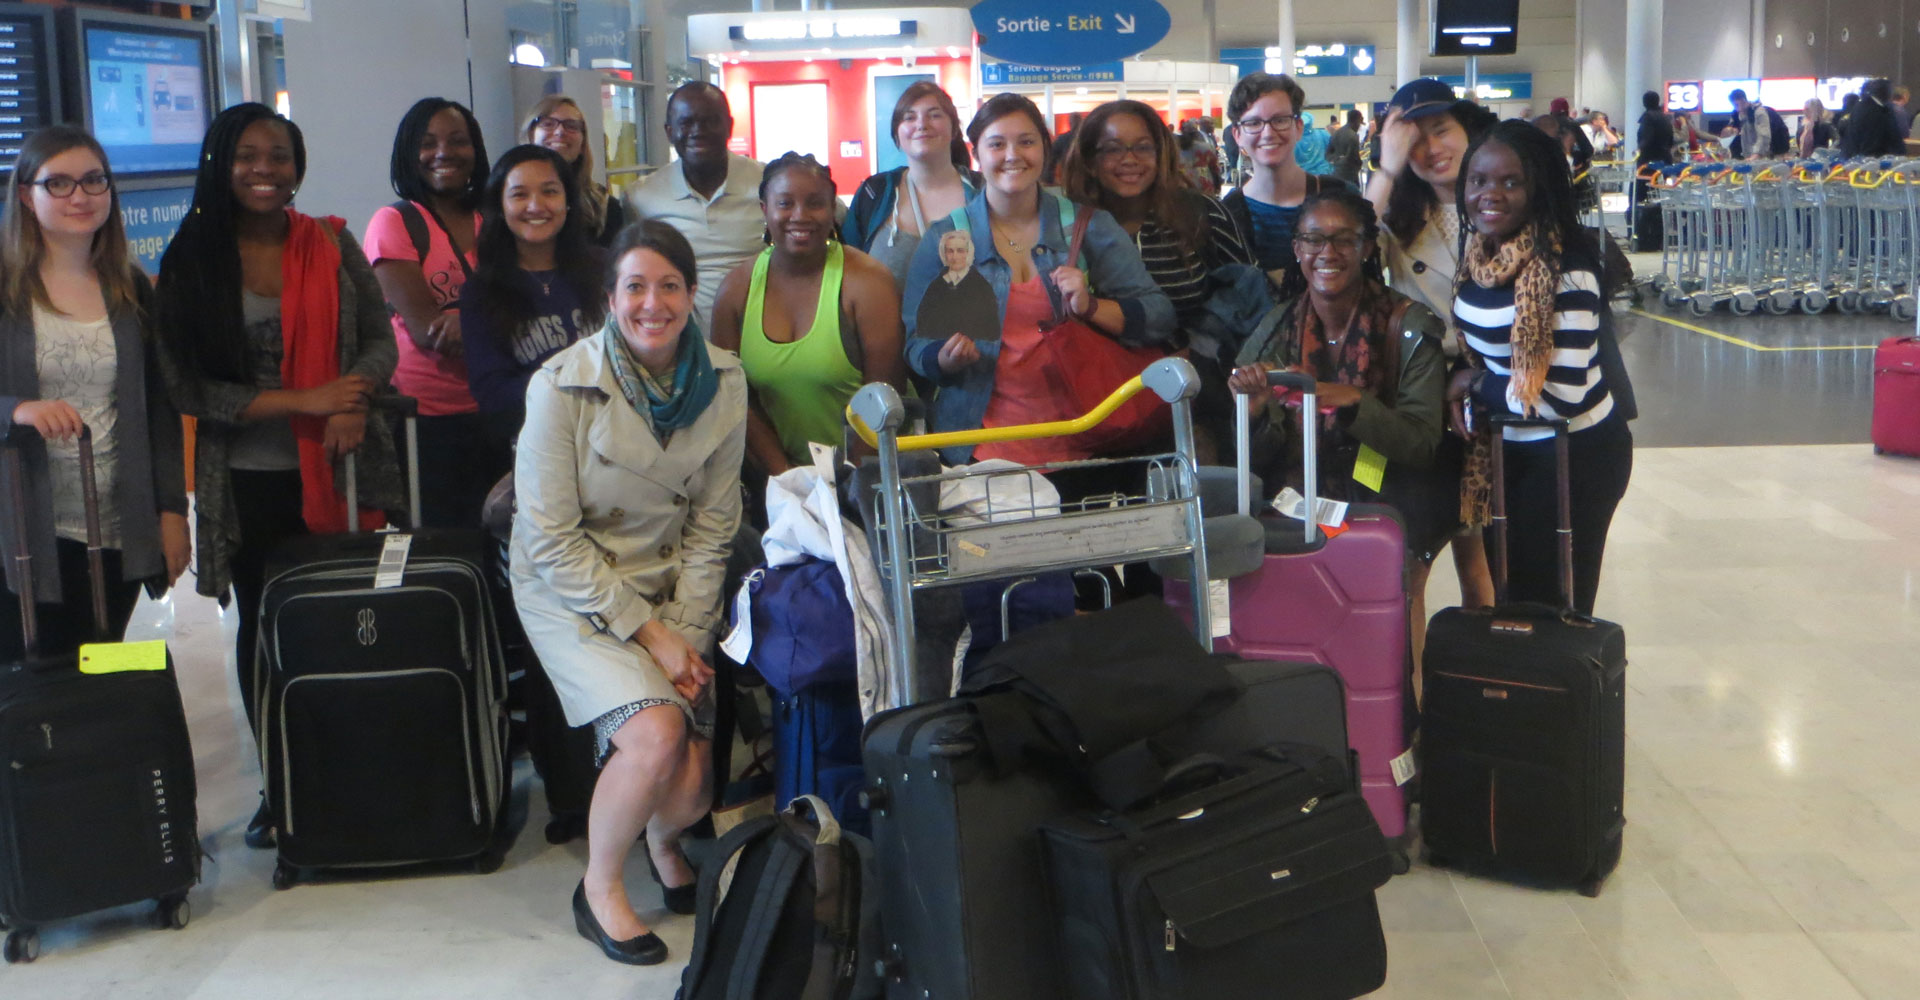 Students and faculty pose for a group photo on their Global Awareness trip to Ireland.